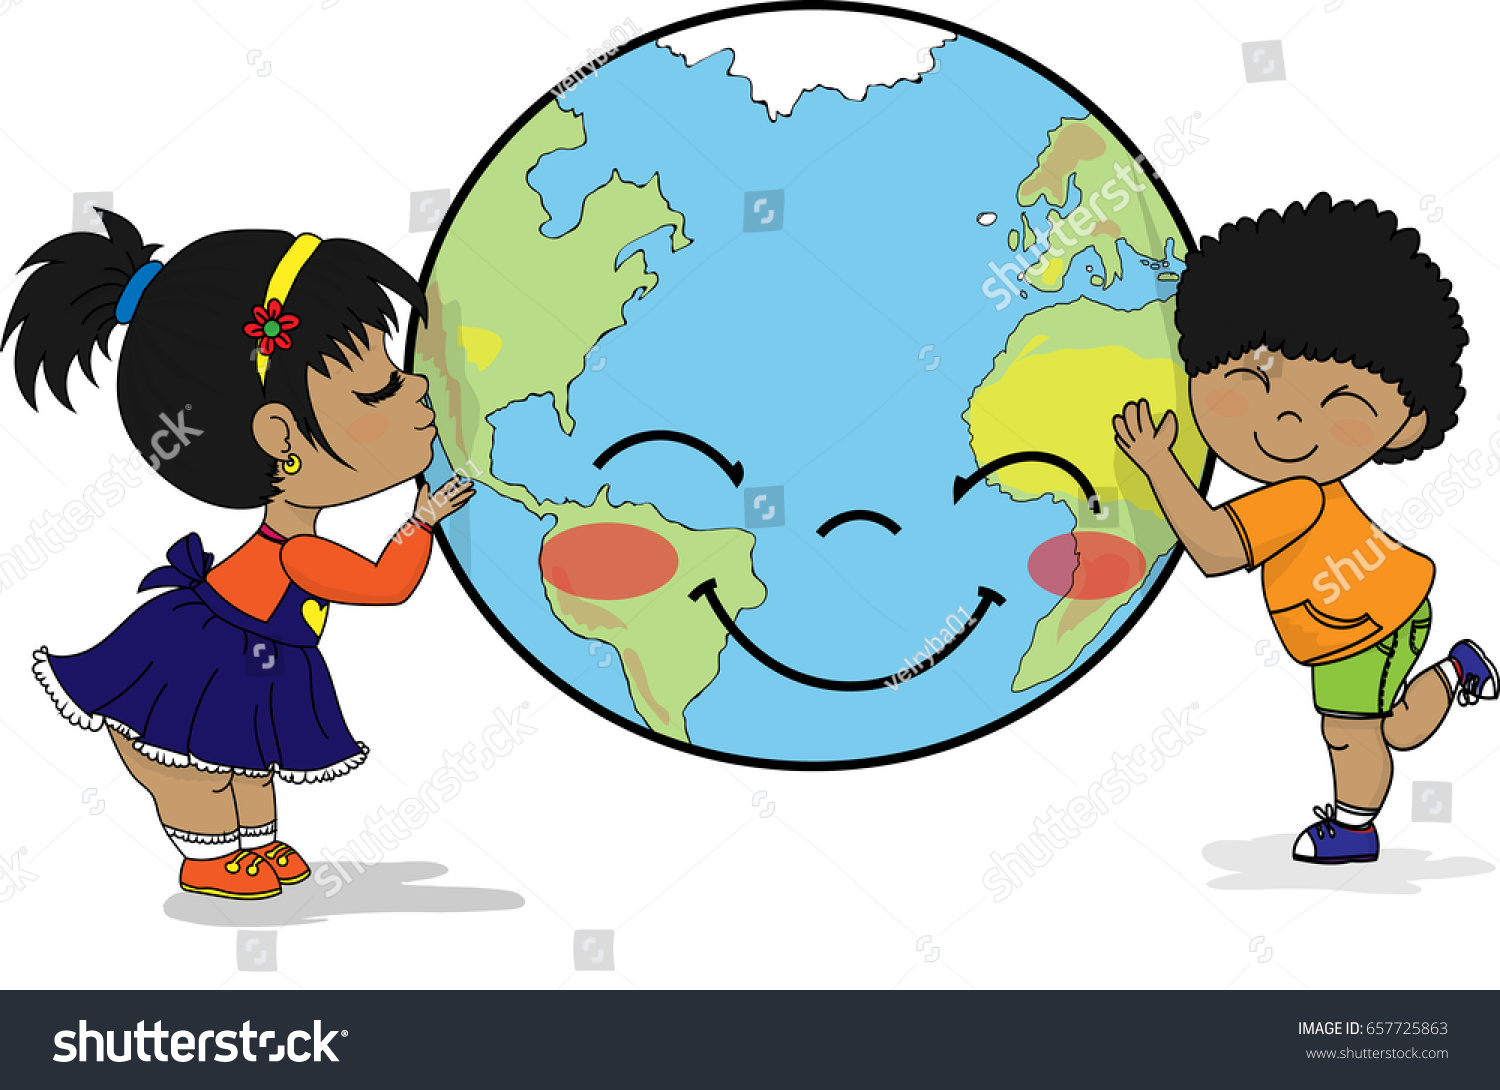 kids celebrating happy earth day smiling stock illustration rh shutterstock com earth day clipart earth day clipart black and white